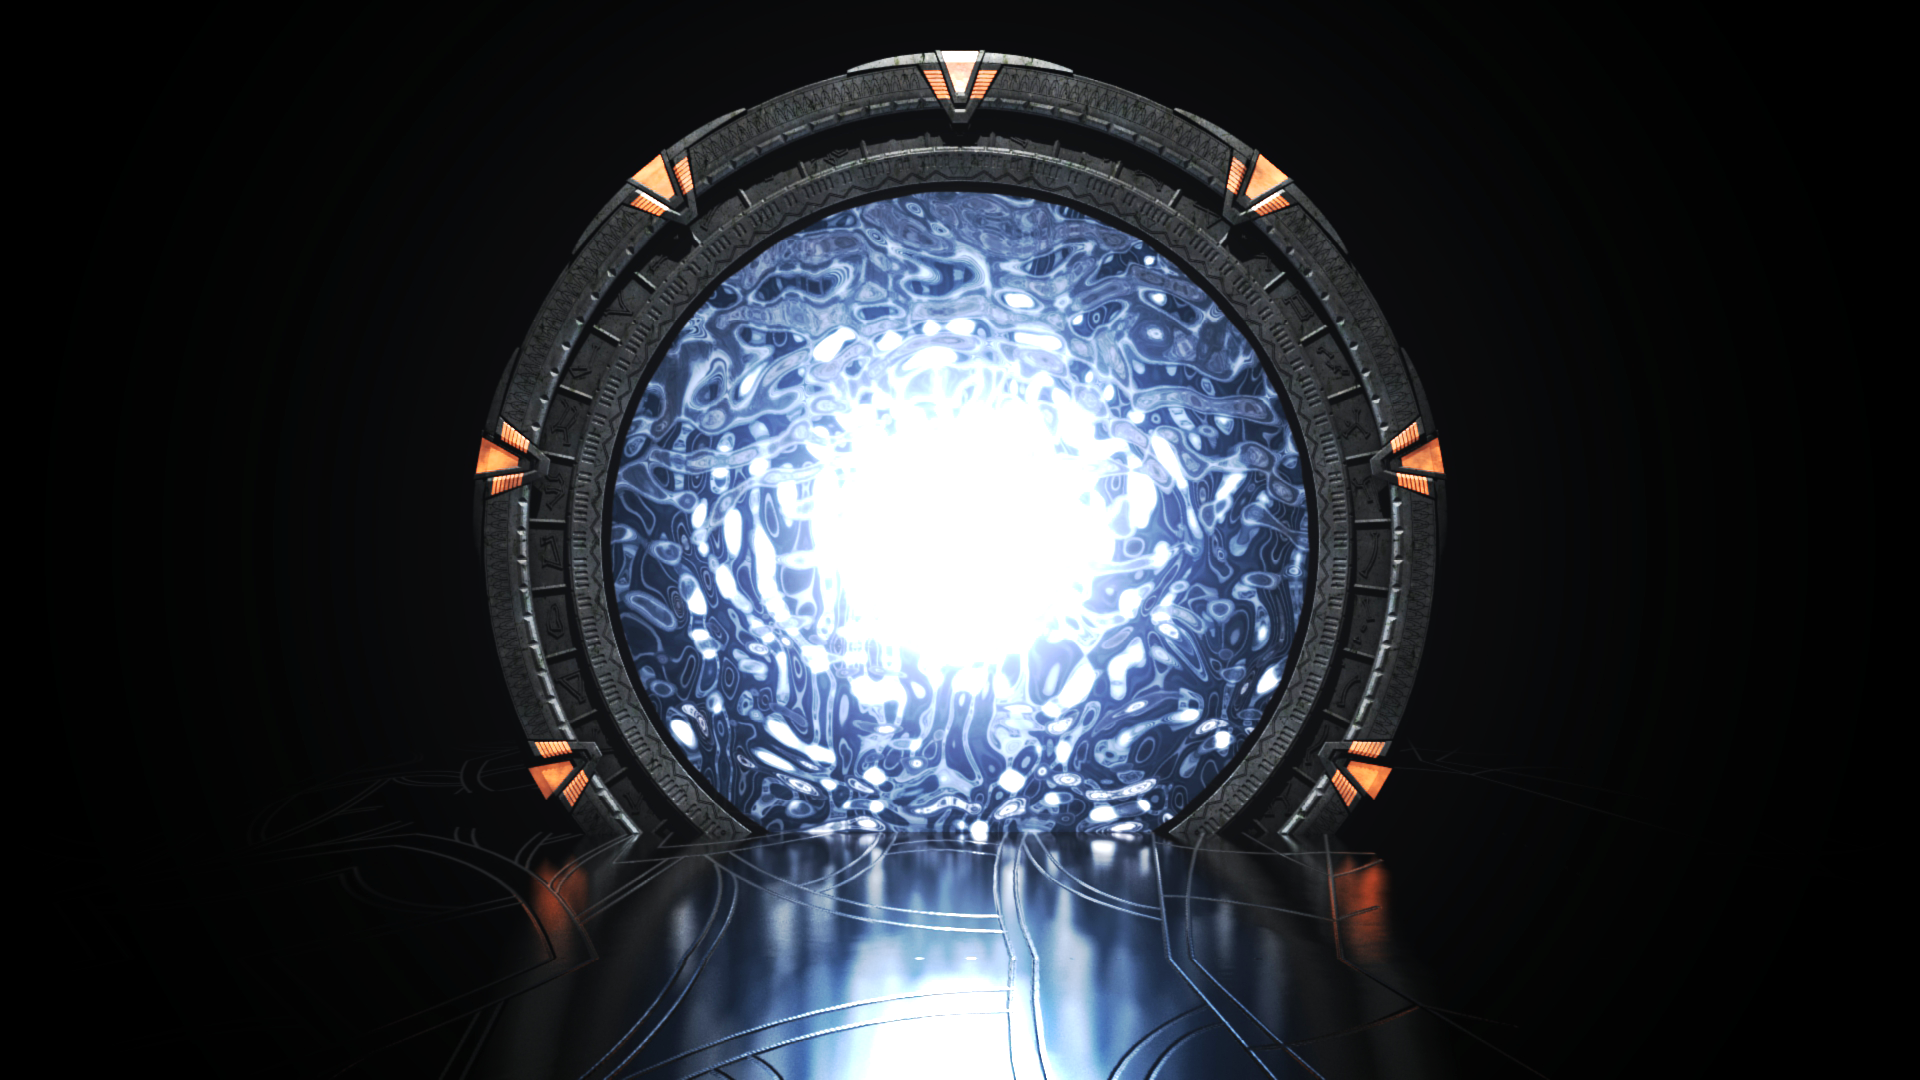 Stargate to get a Film Trilogy Reboot - Geeky Gadgets